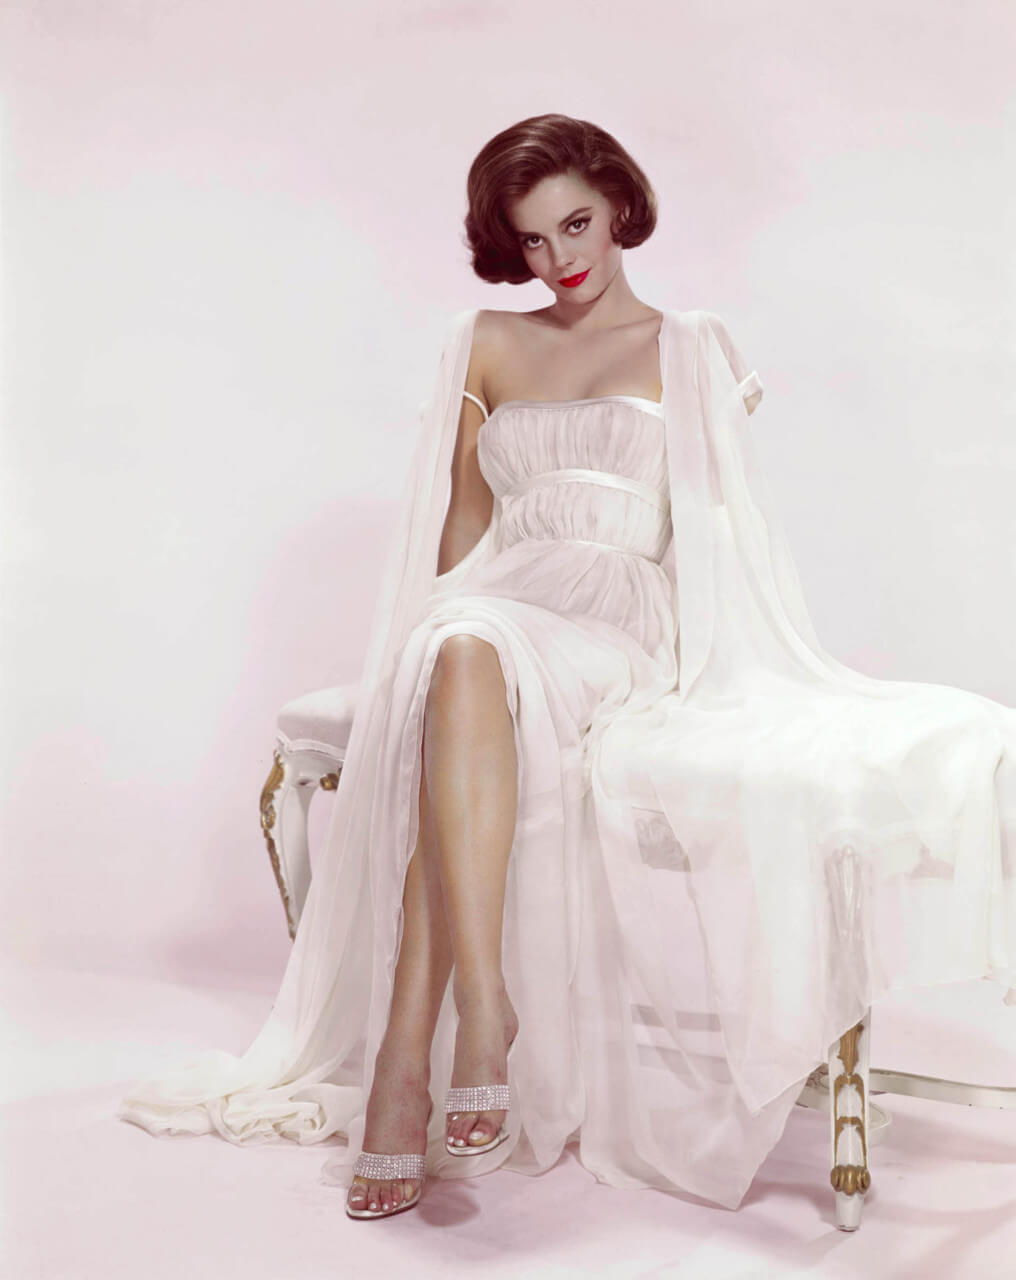 Natalie-Wood white awesome dress